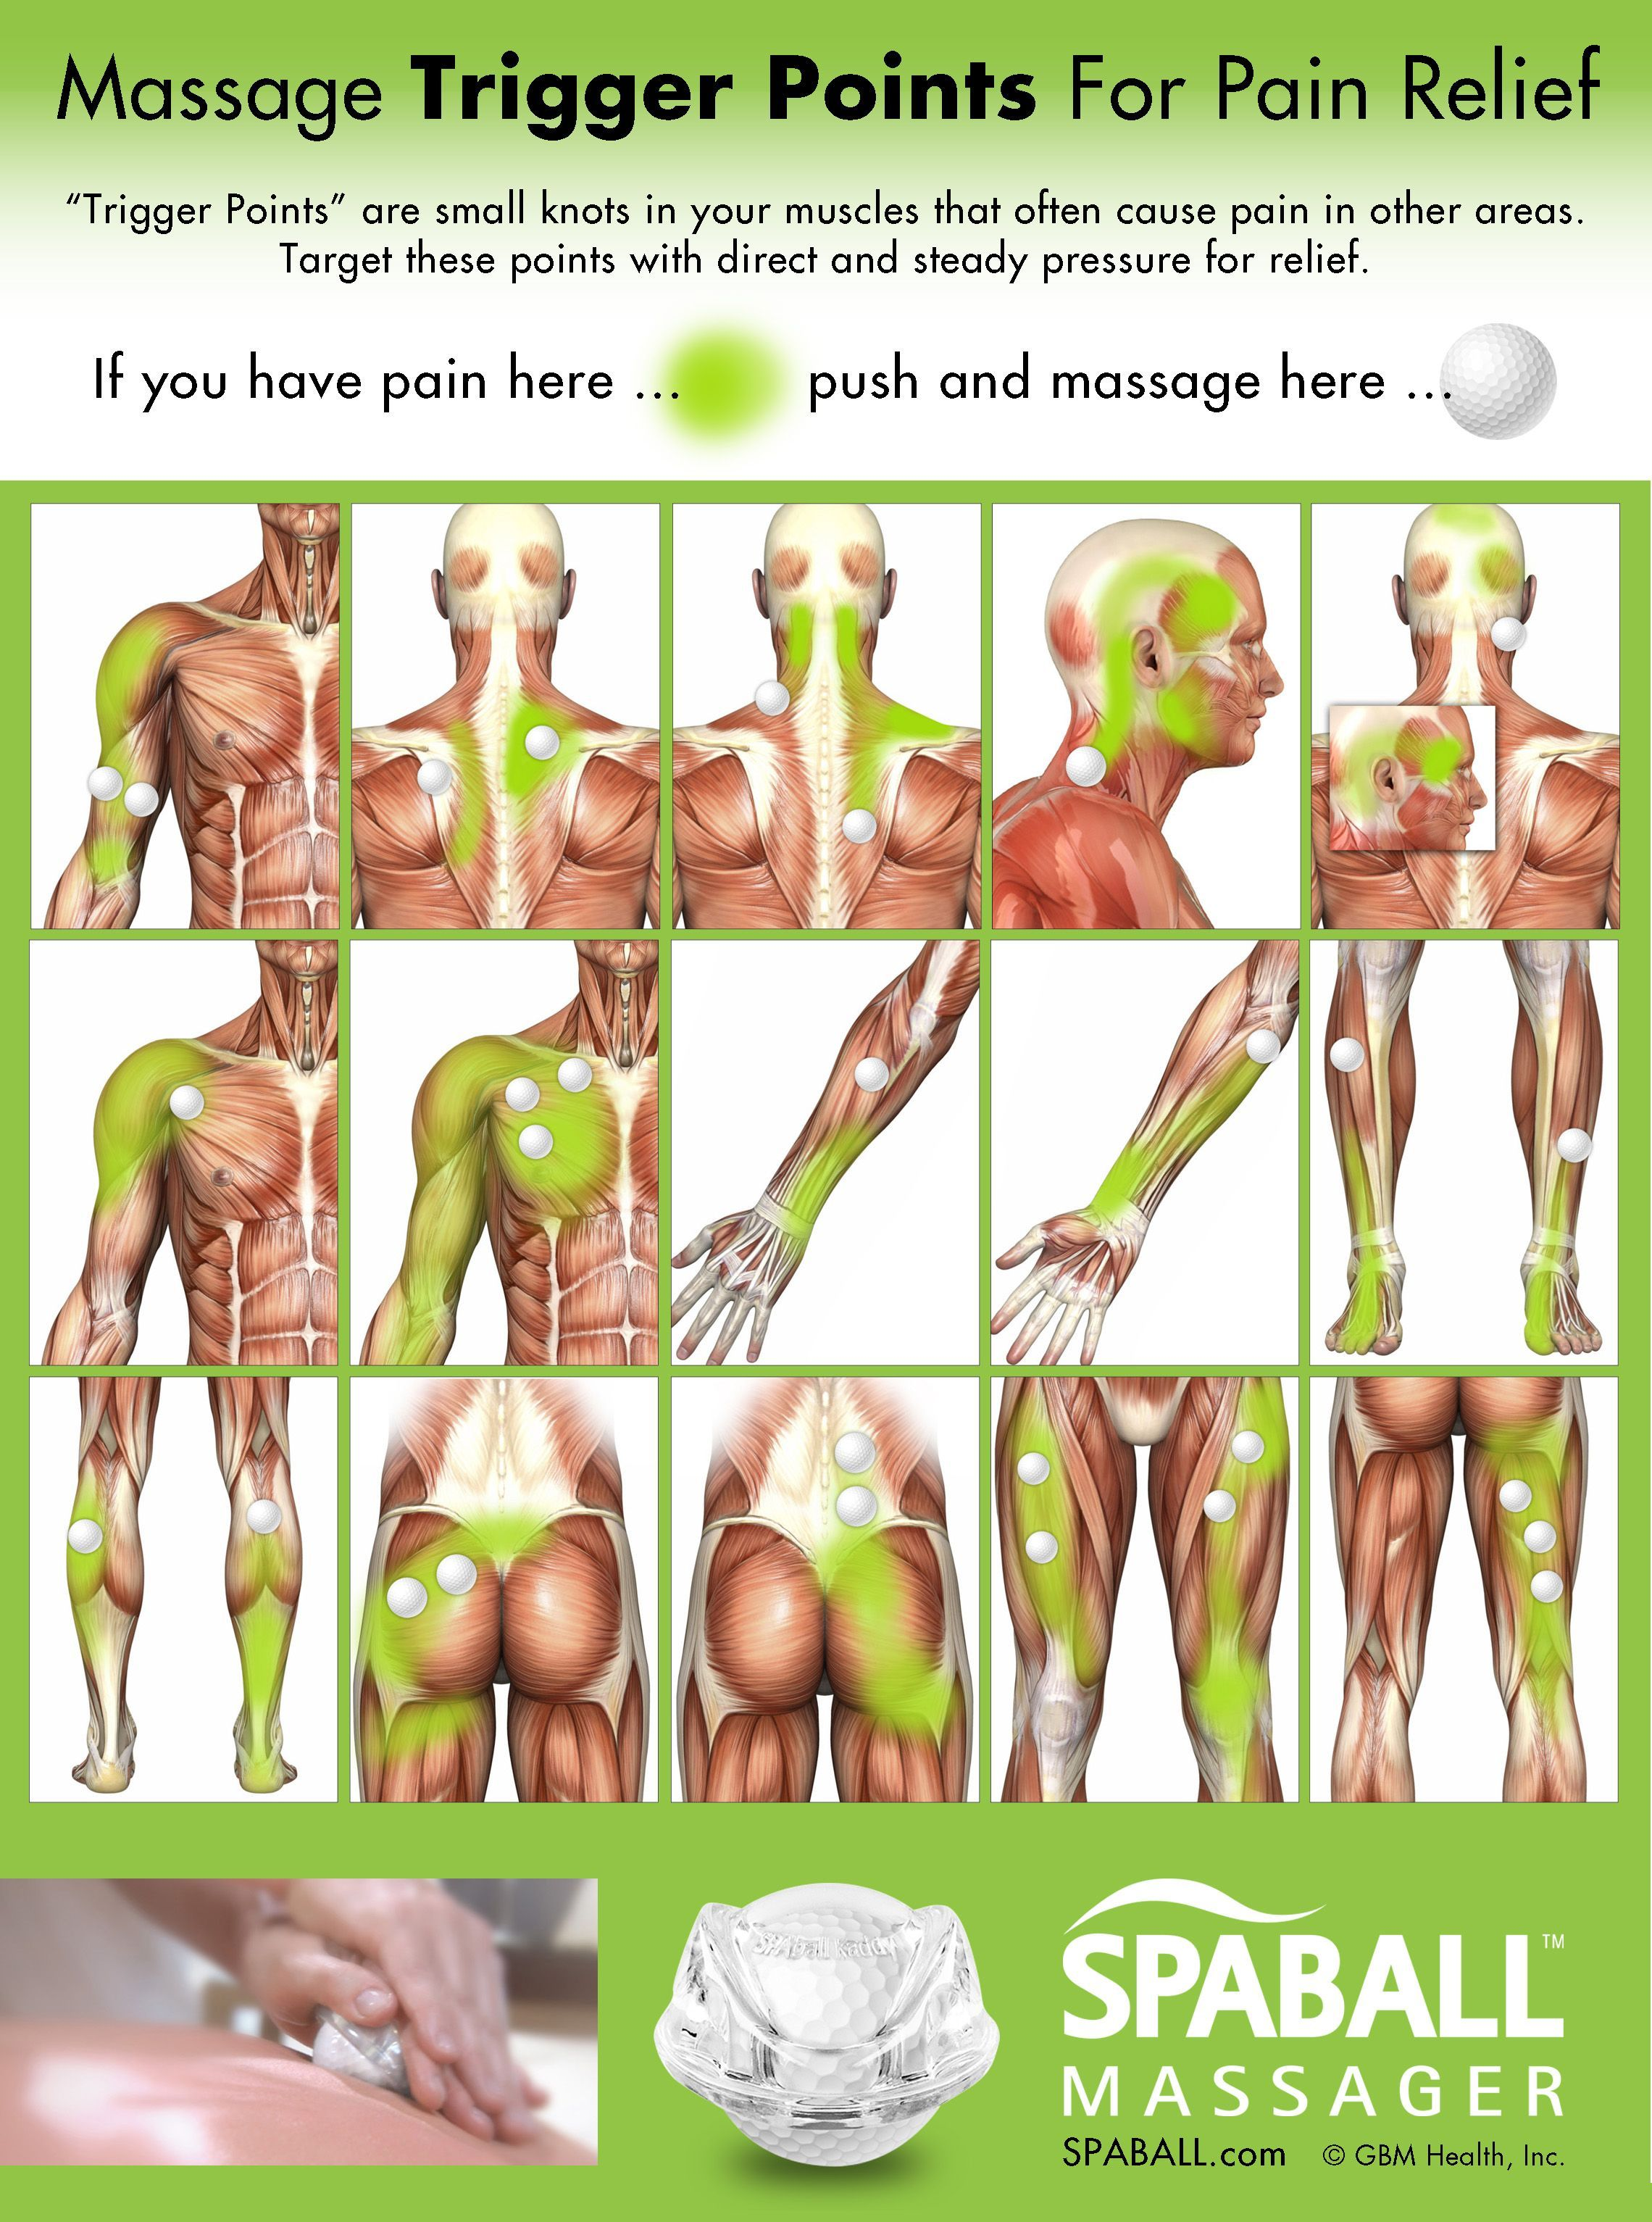 Massage Trigger Points For Pain Relief Massage Therapist School